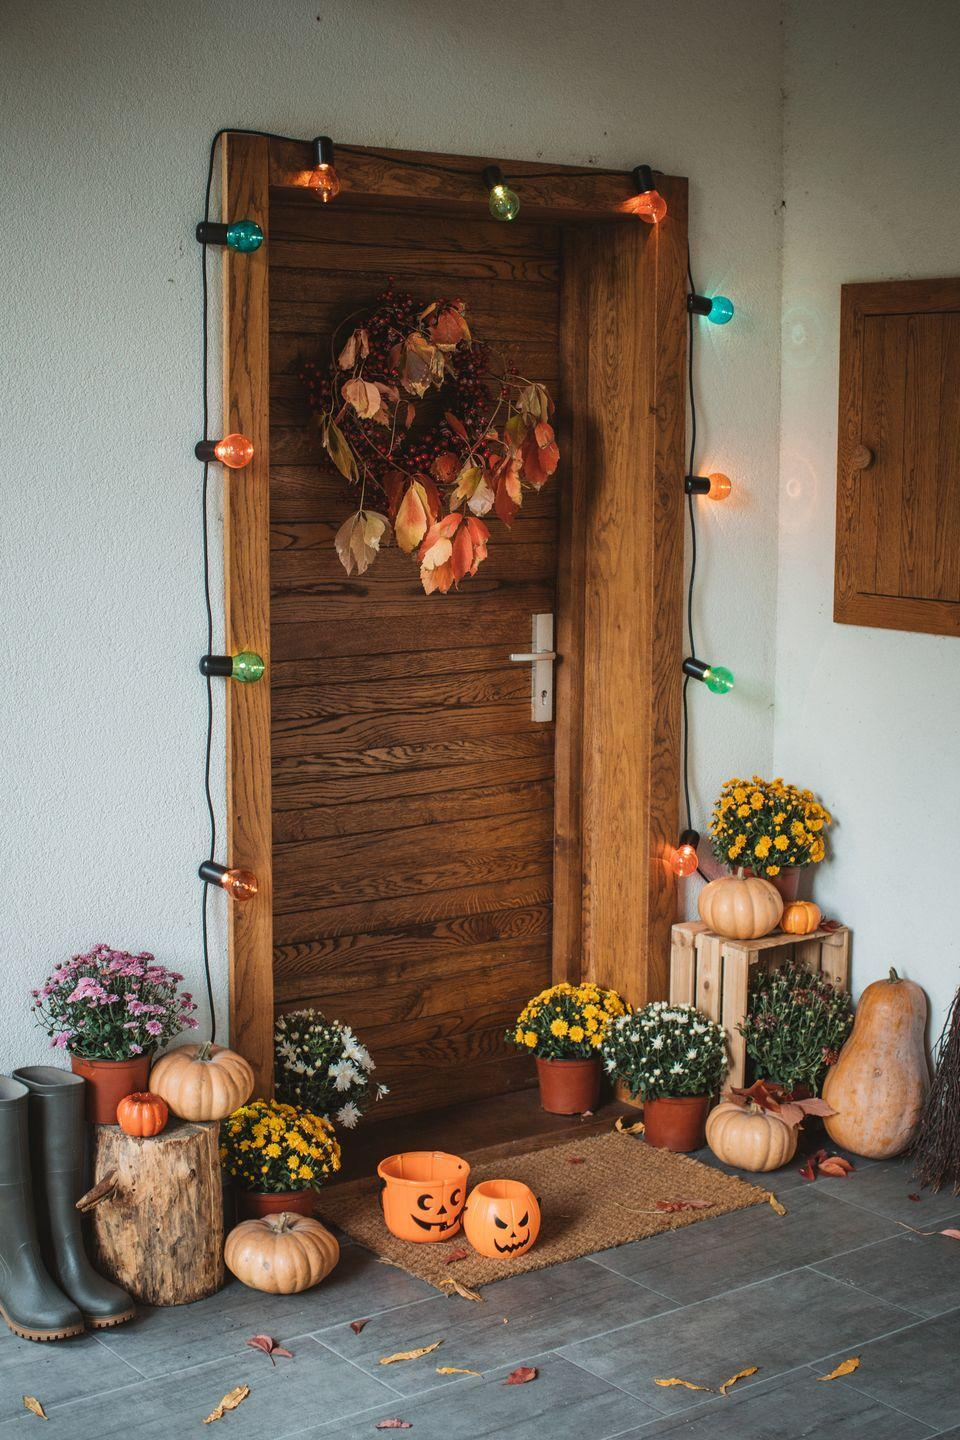 """<p>Let multicolored string lights set the foundation for your Halloween door decorations. Add even more visual appeal with a festive wreath, pumpkins, and flowers. <br><br><a class=""""link rapid-noclick-resp"""" href=""""https://go.redirectingat.com?id=74968X1596630&url=https%3A%2F%2Fwww.homedepot.com%2Fp%2FNovolink-25-Light-15-4-ft-Wi-Fi-RGB-Color-Changing-LED-C9-Christmas-String-Lights-works-with-Alexa-SLWA-C9-25%2F305168010&sref=https%3A%2F%2Fwww.goodhousekeeping.com%2Fholidays%2Fhalloween-ideas%2Fg32948621%2Fhalloween-door-decorations%2F"""" rel=""""nofollow noopener"""" target=""""_blank"""" data-ylk=""""slk:SHOP MULTICOLORED STRING LIGHTS"""">SHOP MULTICOLORED STRING LIGHTS</a></p>"""